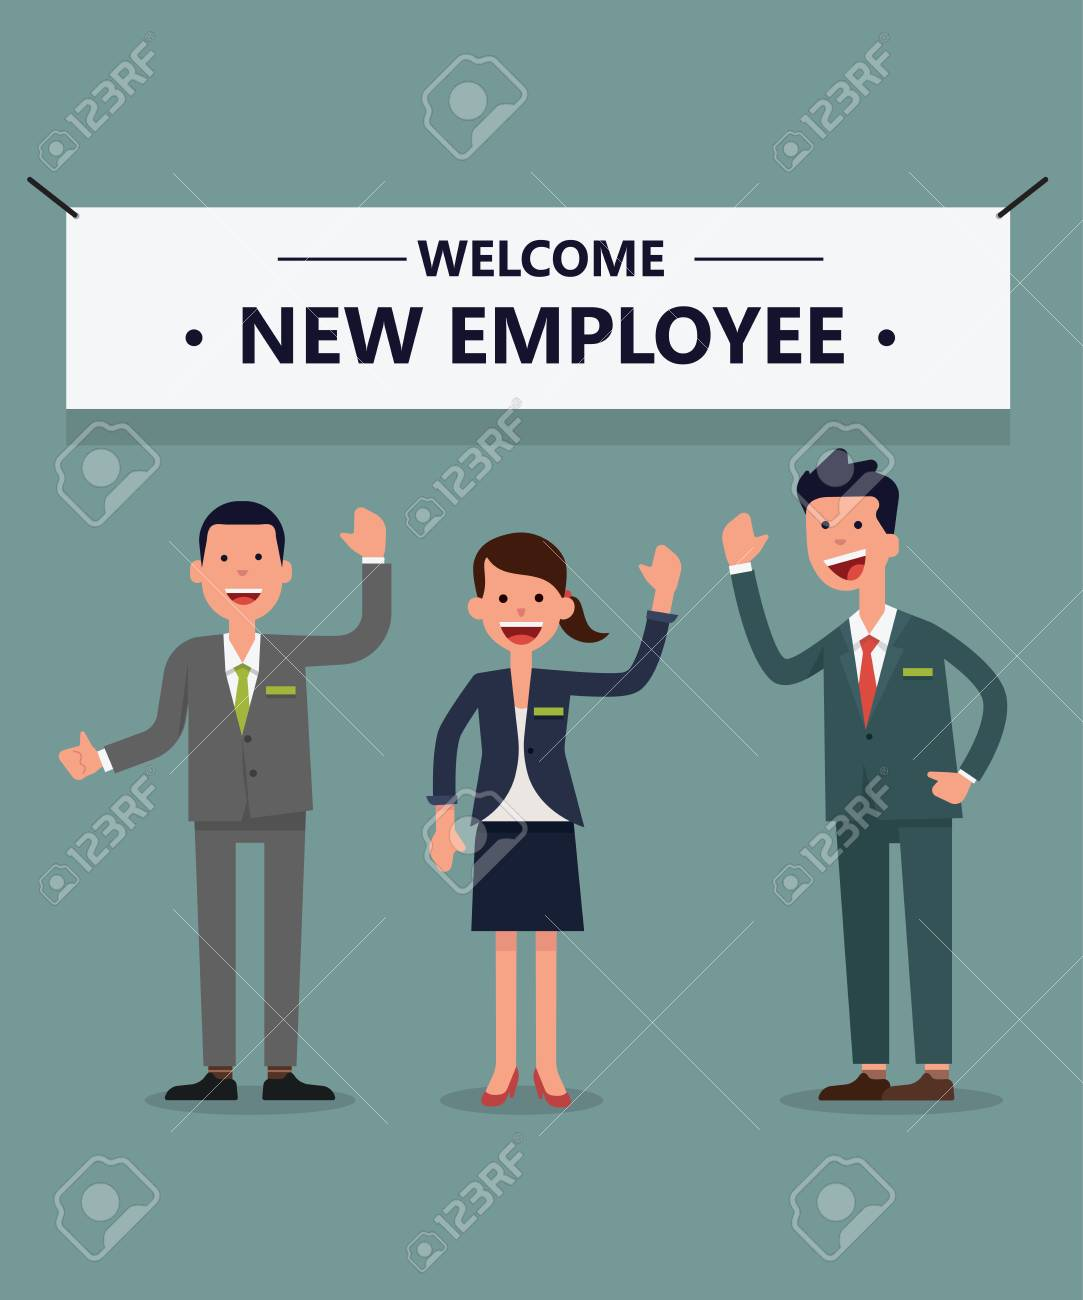 welcome new employee royalty free cliparts vectors and stock